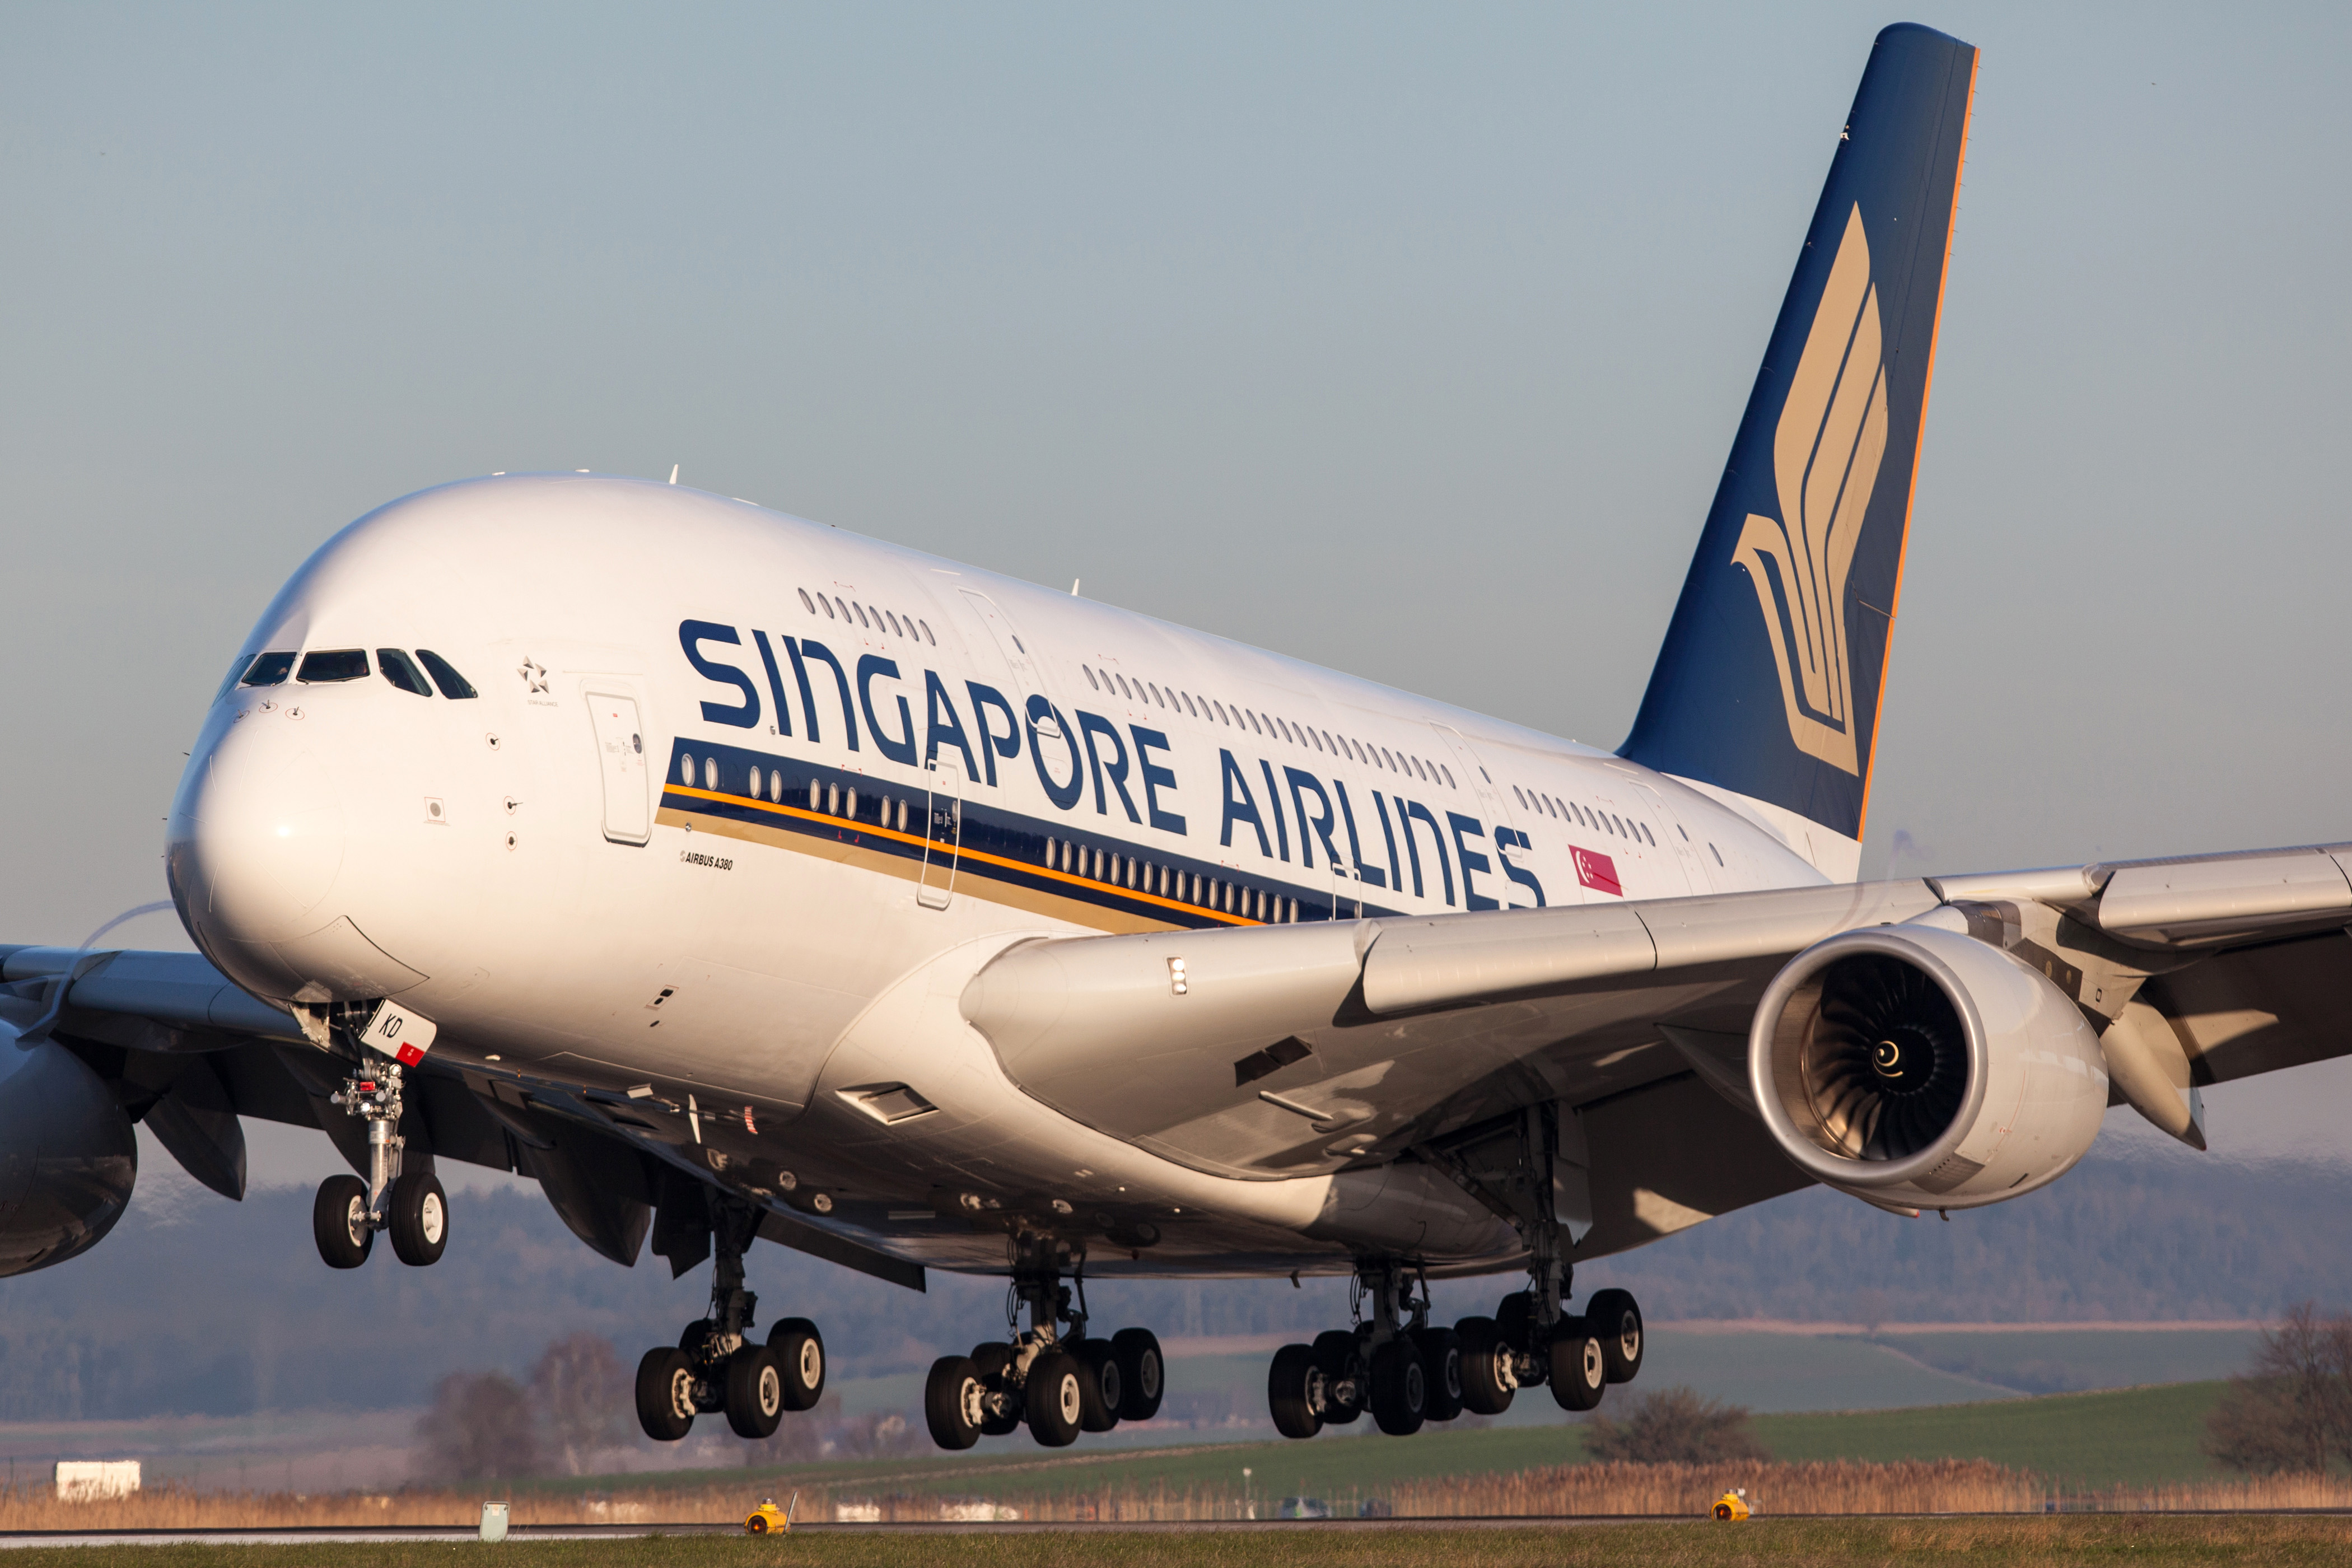 Singapore Airlines said it is working on how the rules will affect flights.